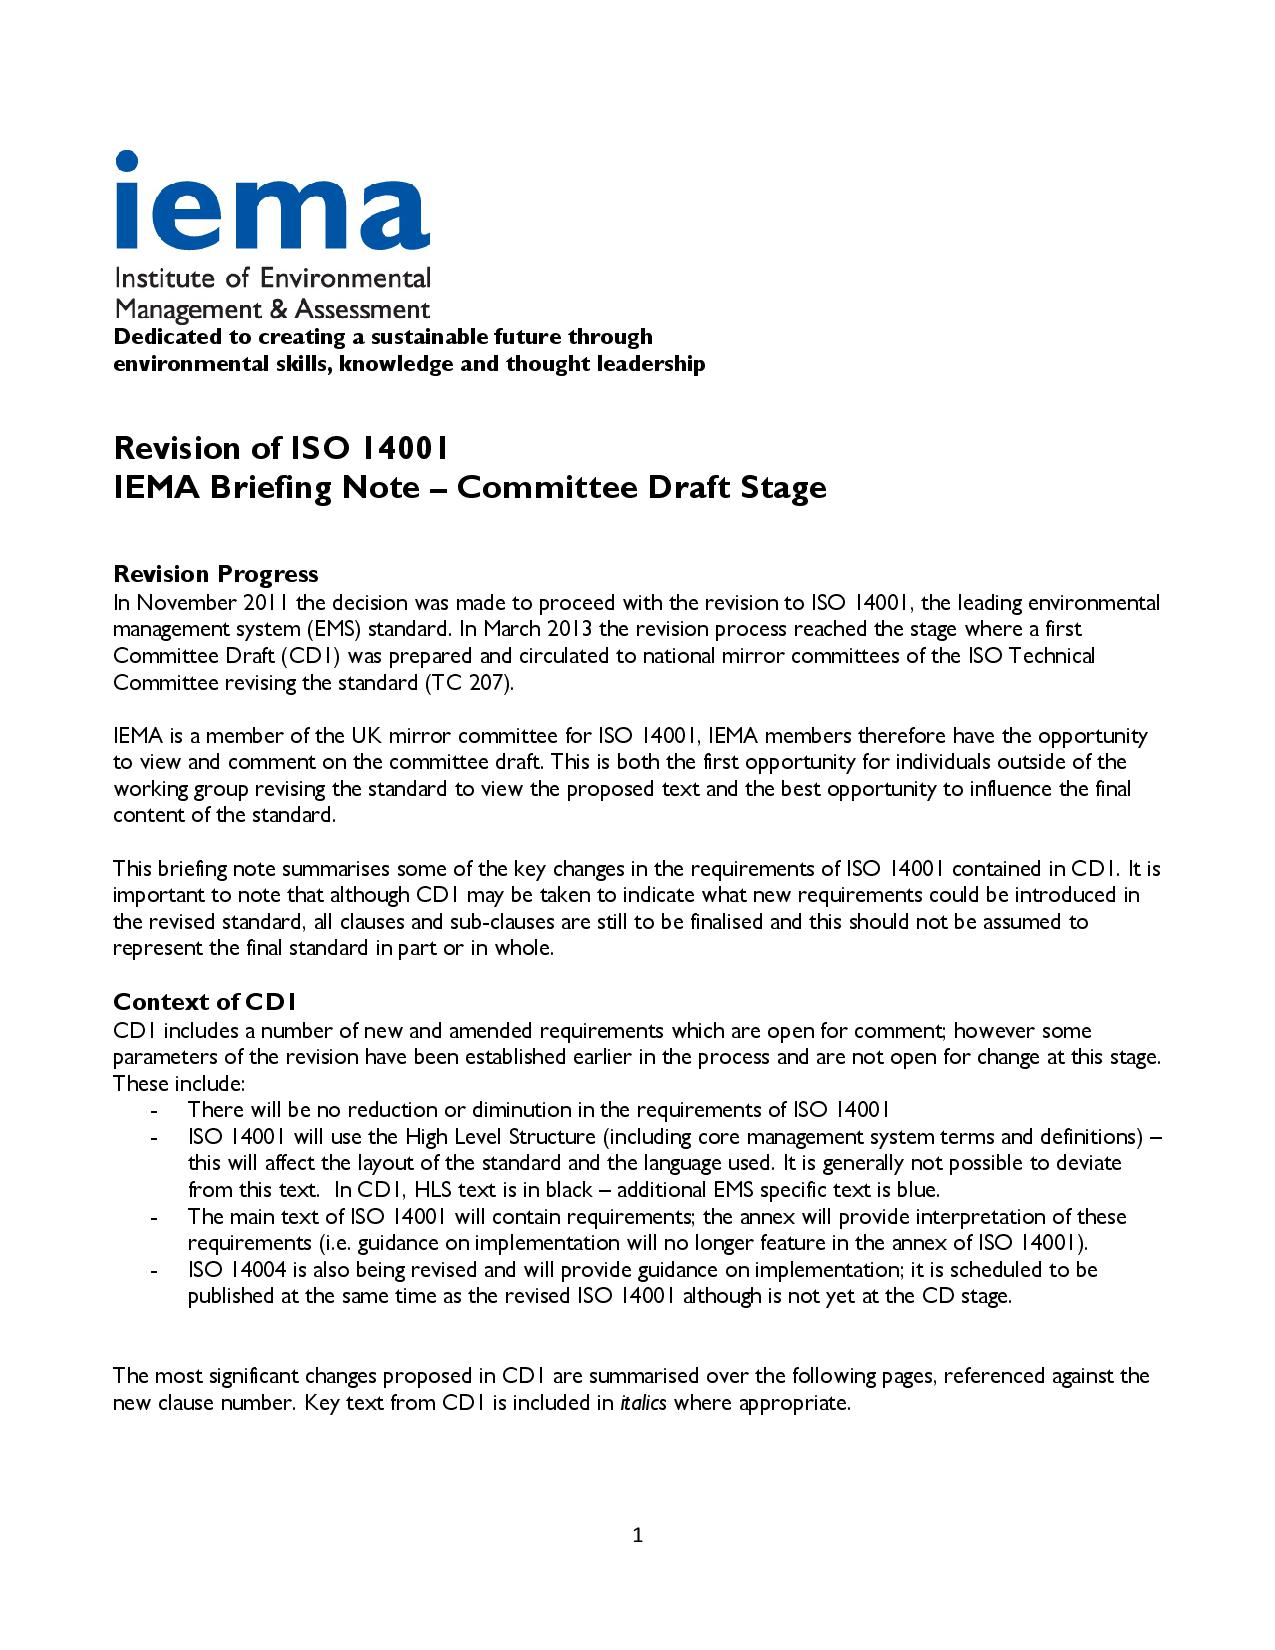 Update Iso 14001 Revision Andrew T Marlow Mba Miema Cenv